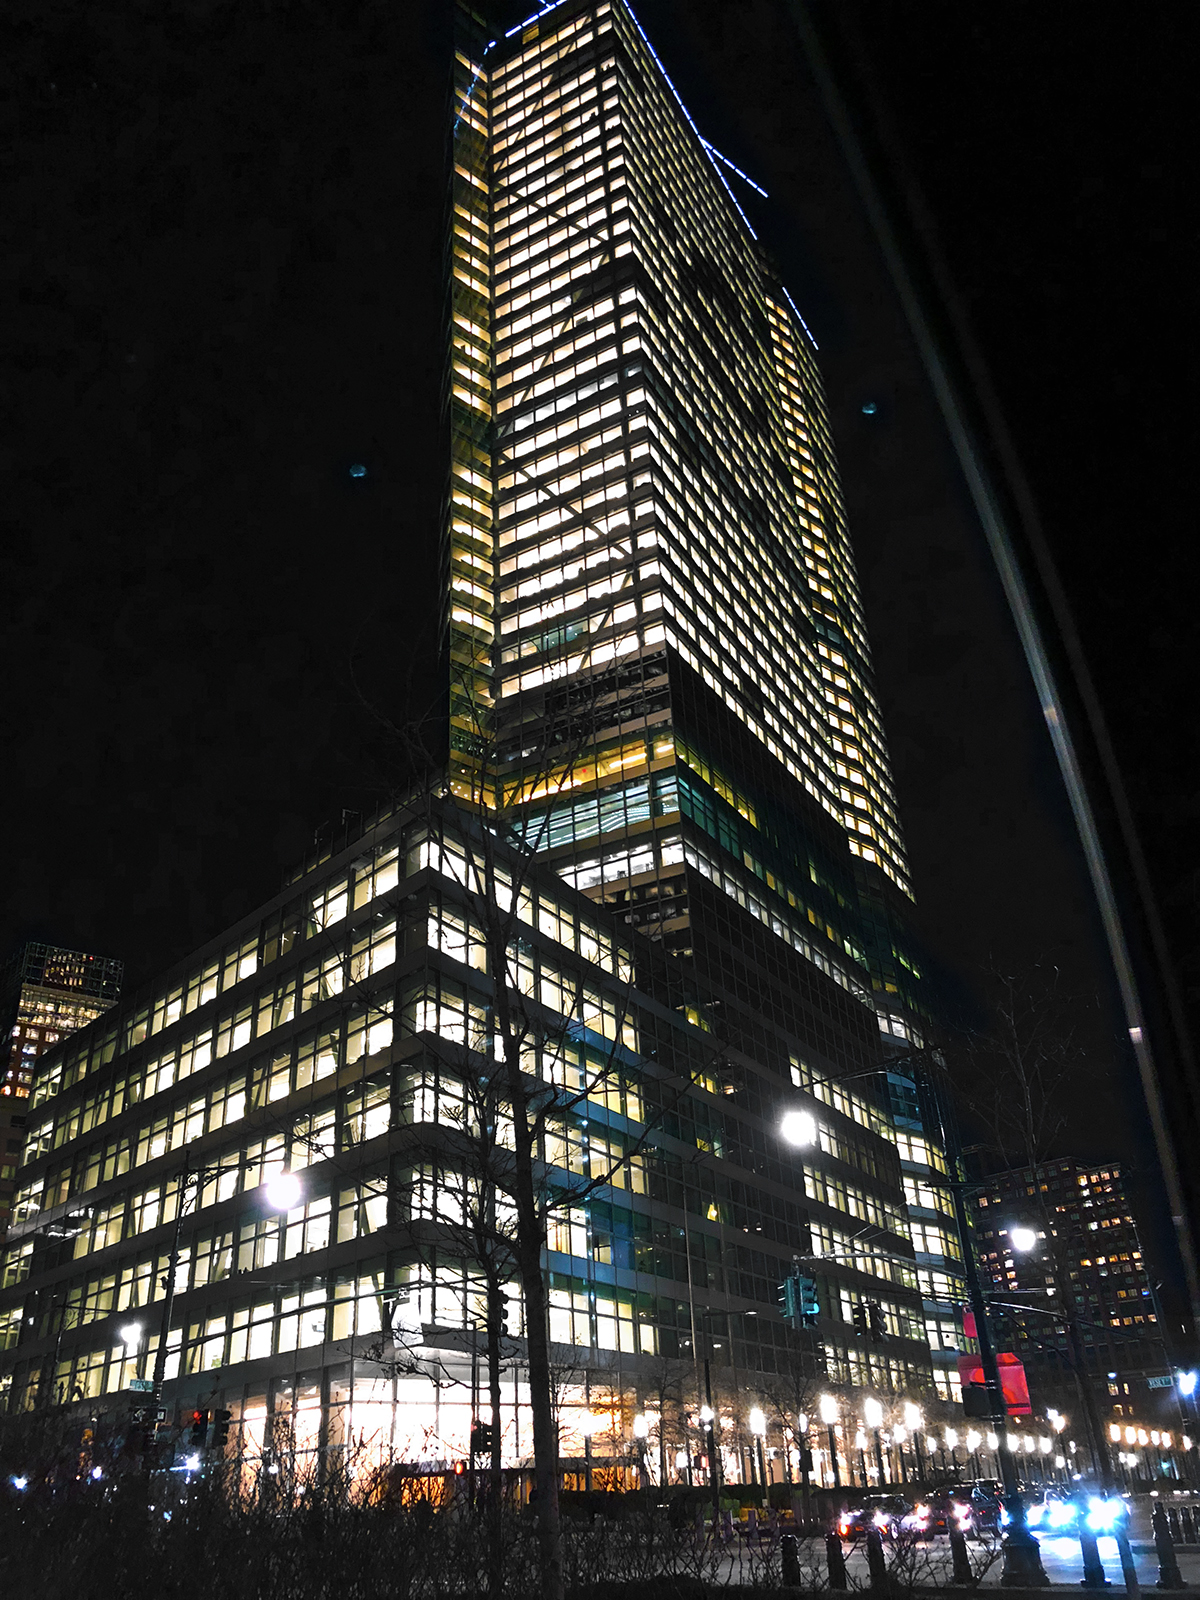 FiDi Goldman Sachs Building at Night, by Elliot Bogod